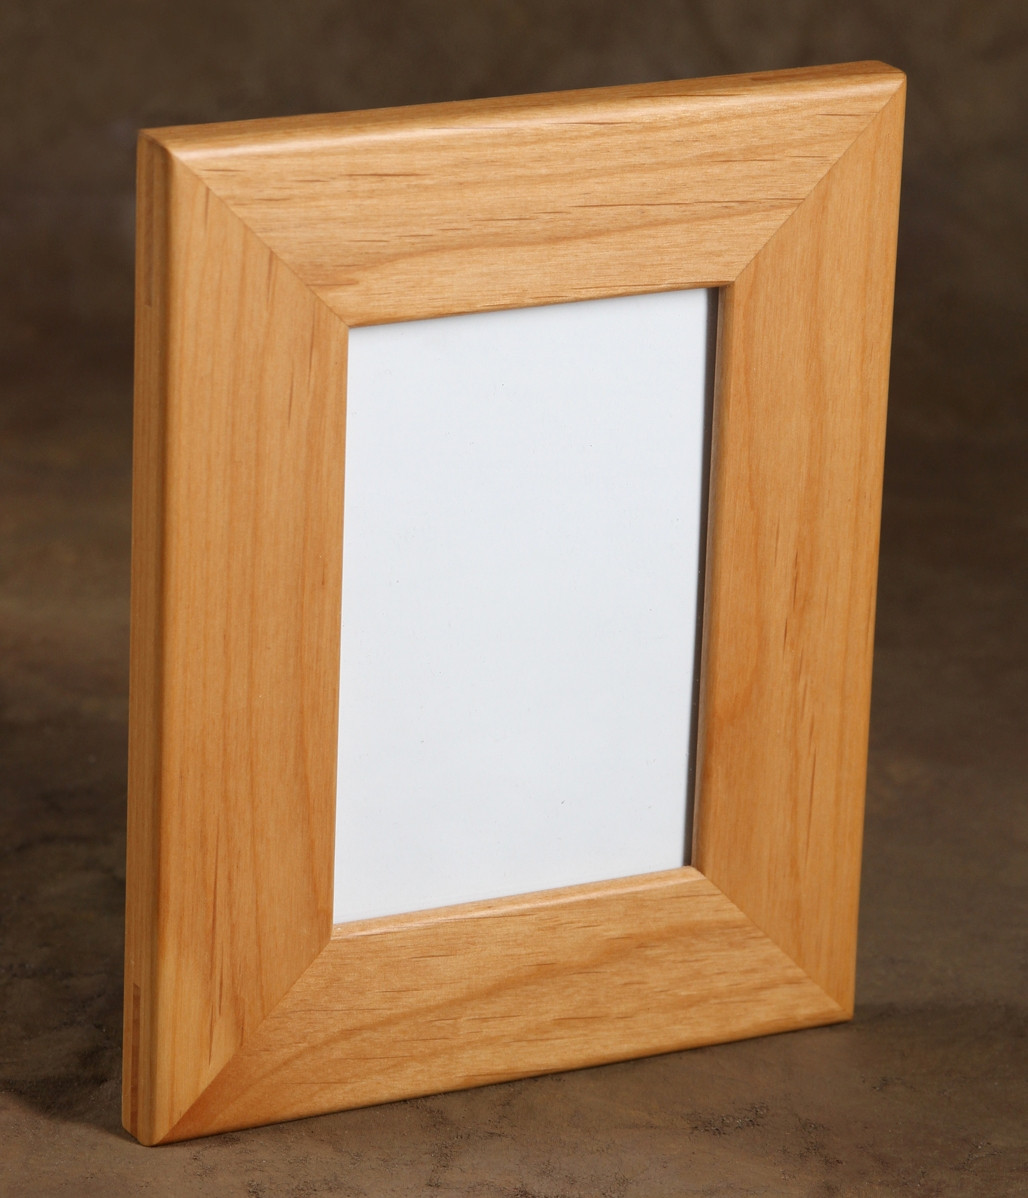 Red Alder Picture Frames 8x10 Quot The Good Wood Store